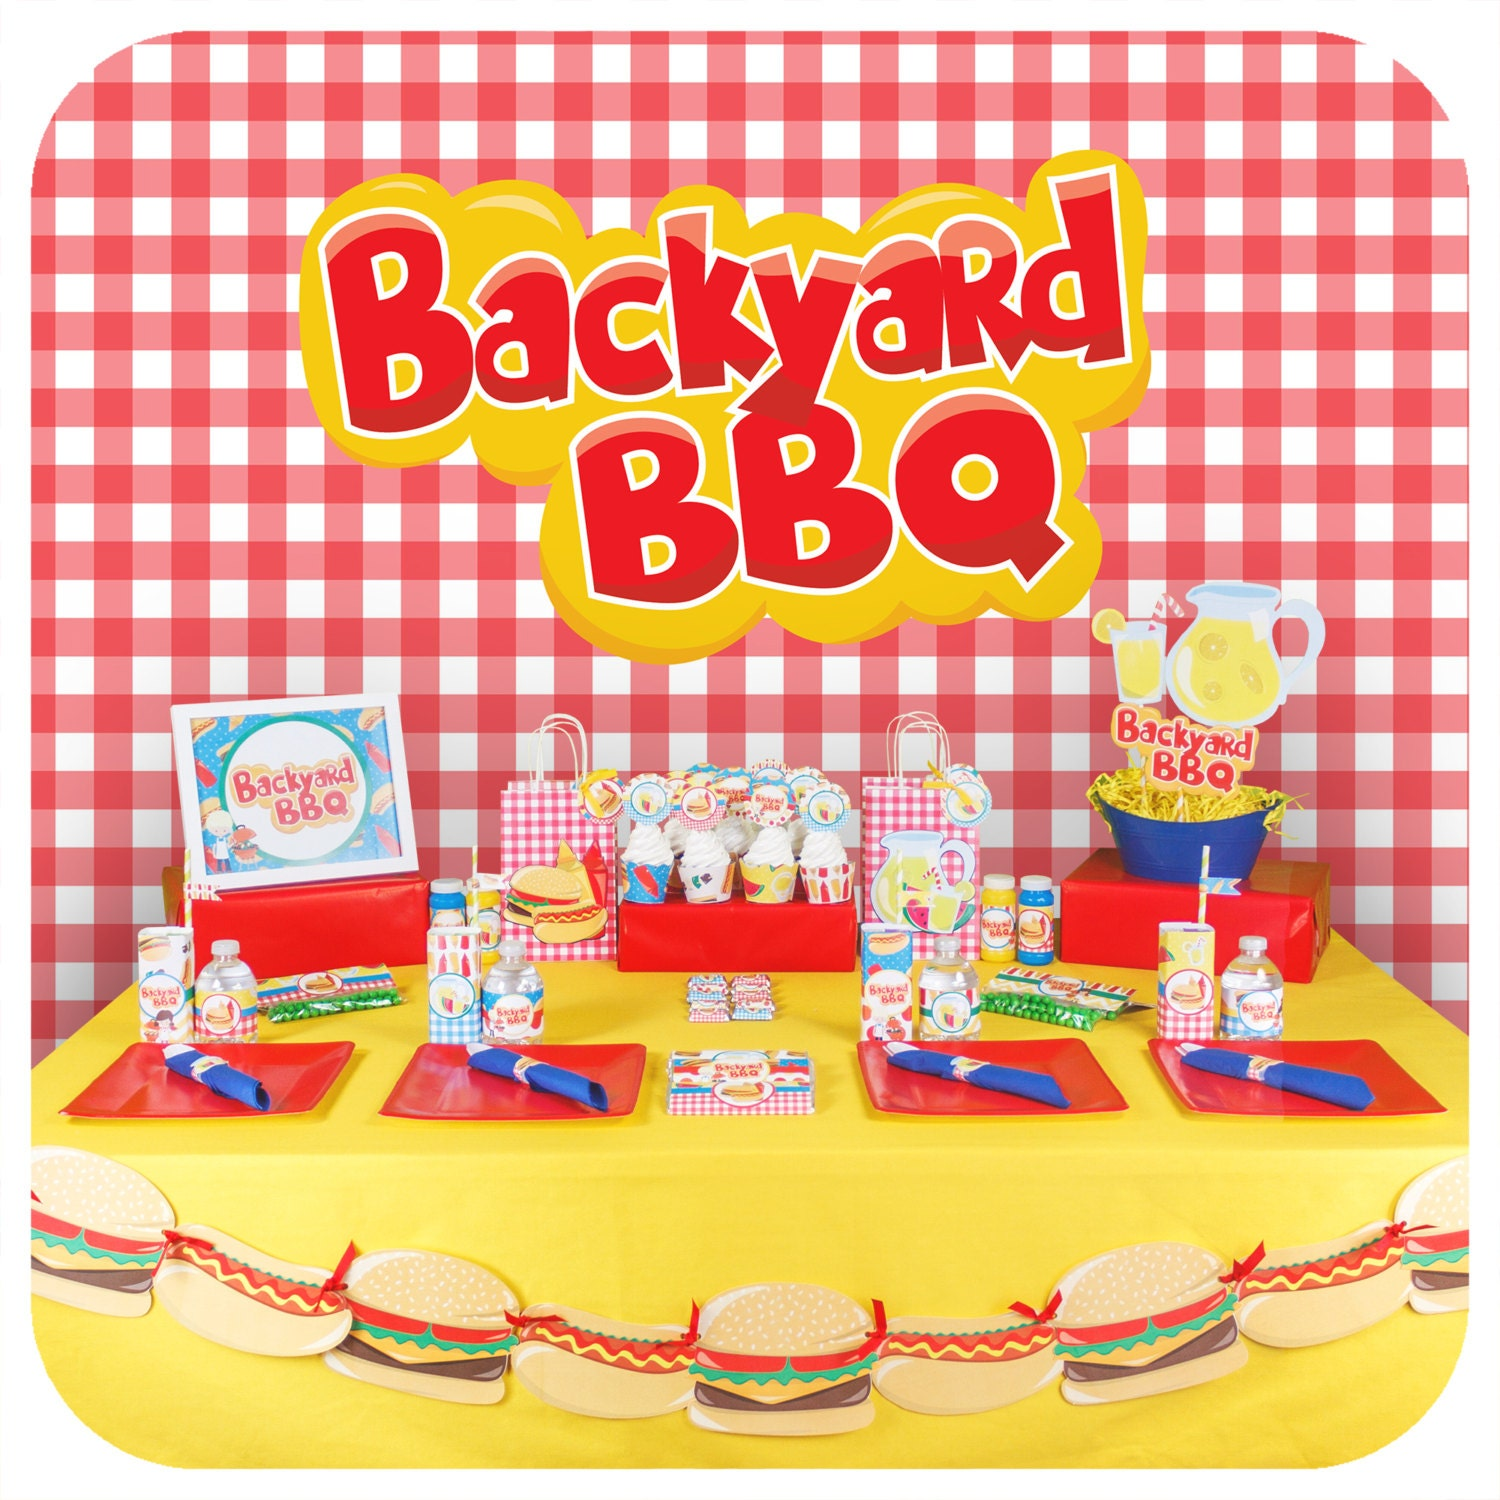 backyard bbq party background checkered background party